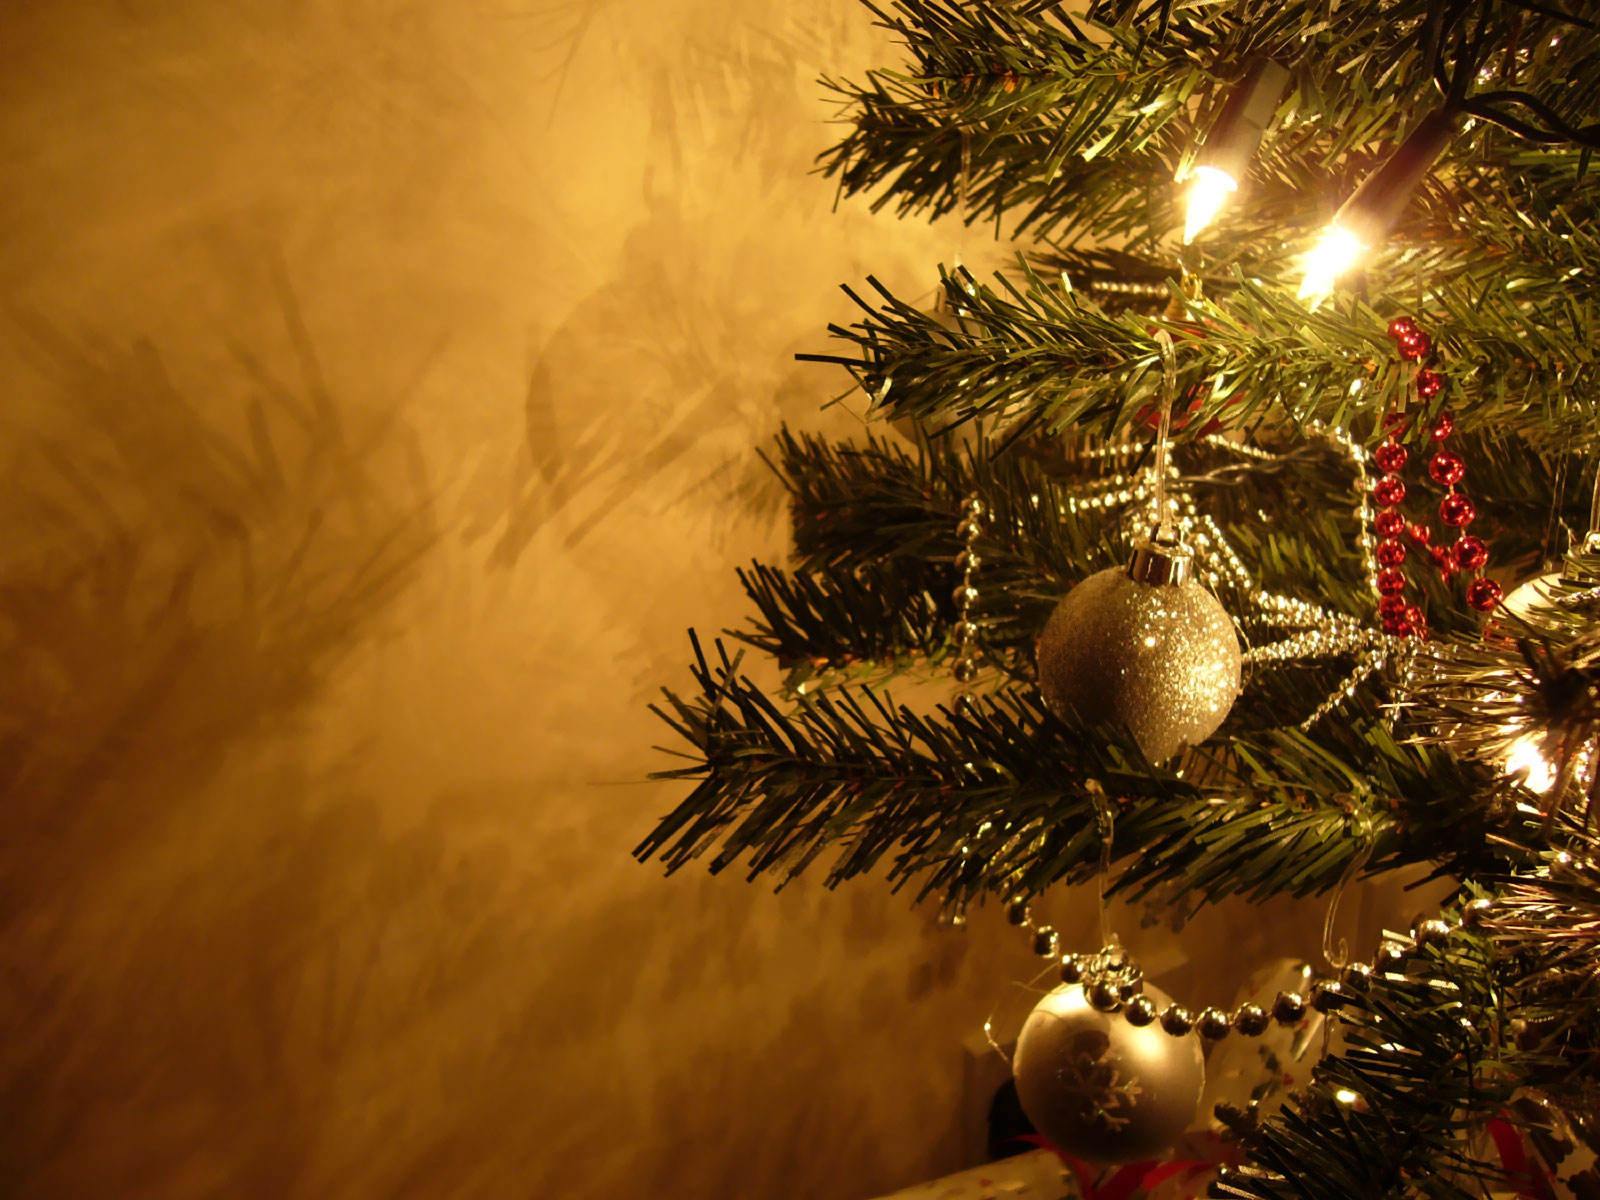 New-blog-pics: Christmas Wallpaper In 3d